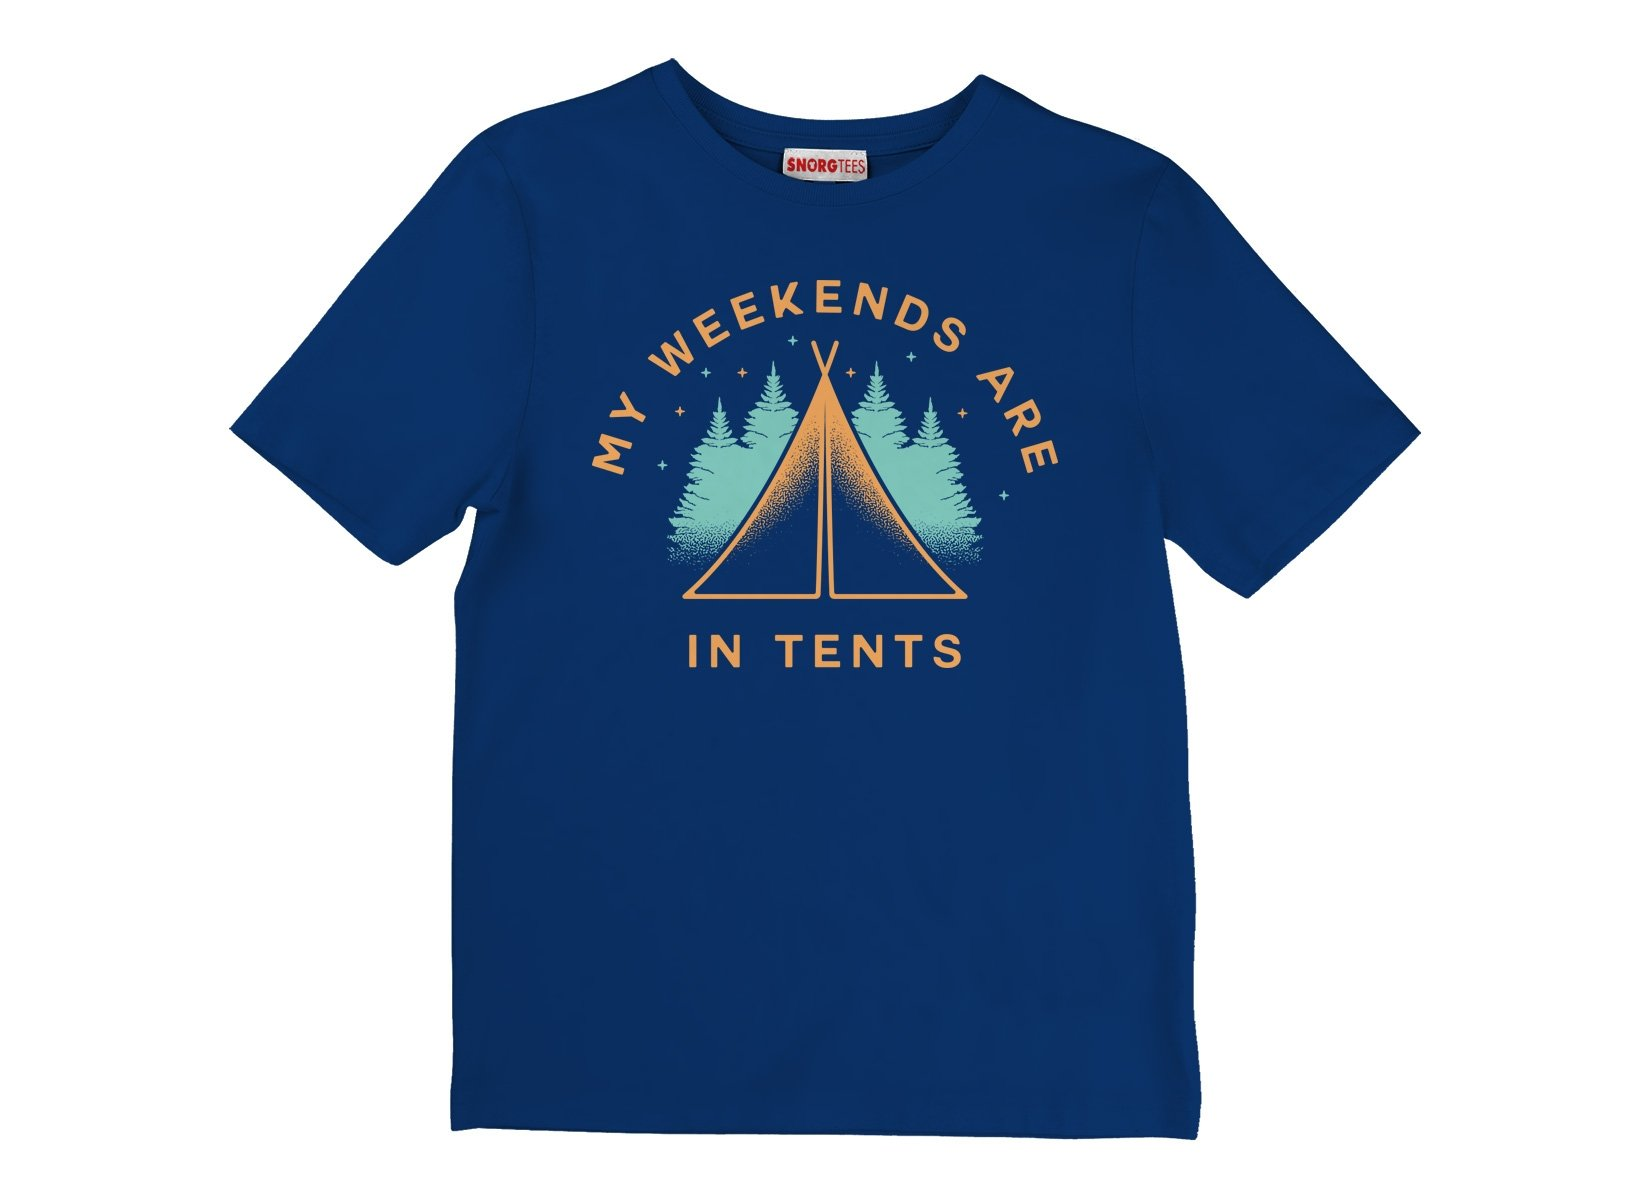 My Weekends Are In Tents on Kids T-Shirt